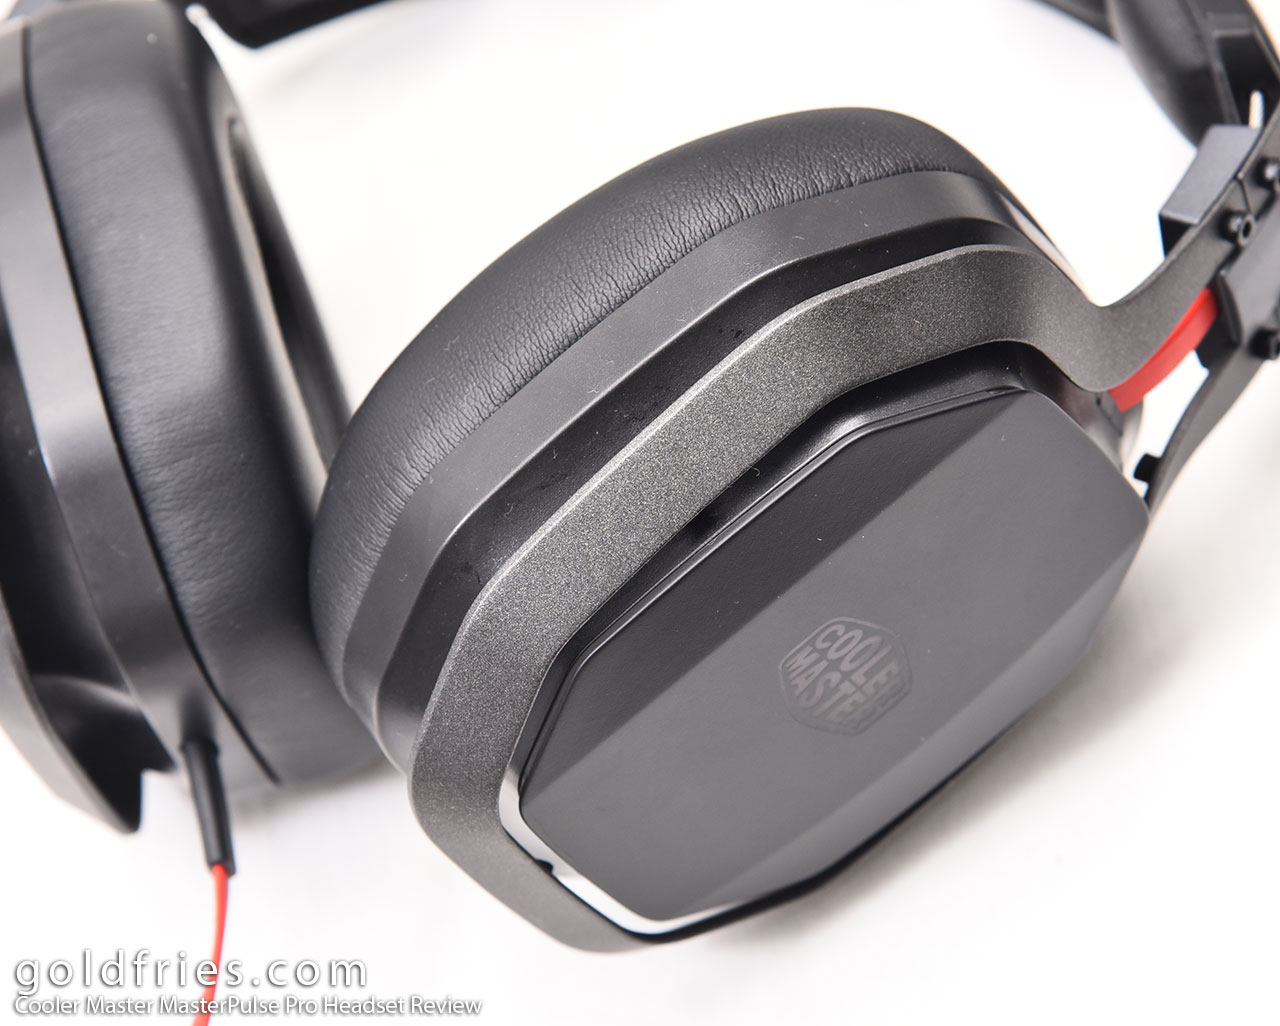 Cooler Master MasterPulse Pro Headset Review